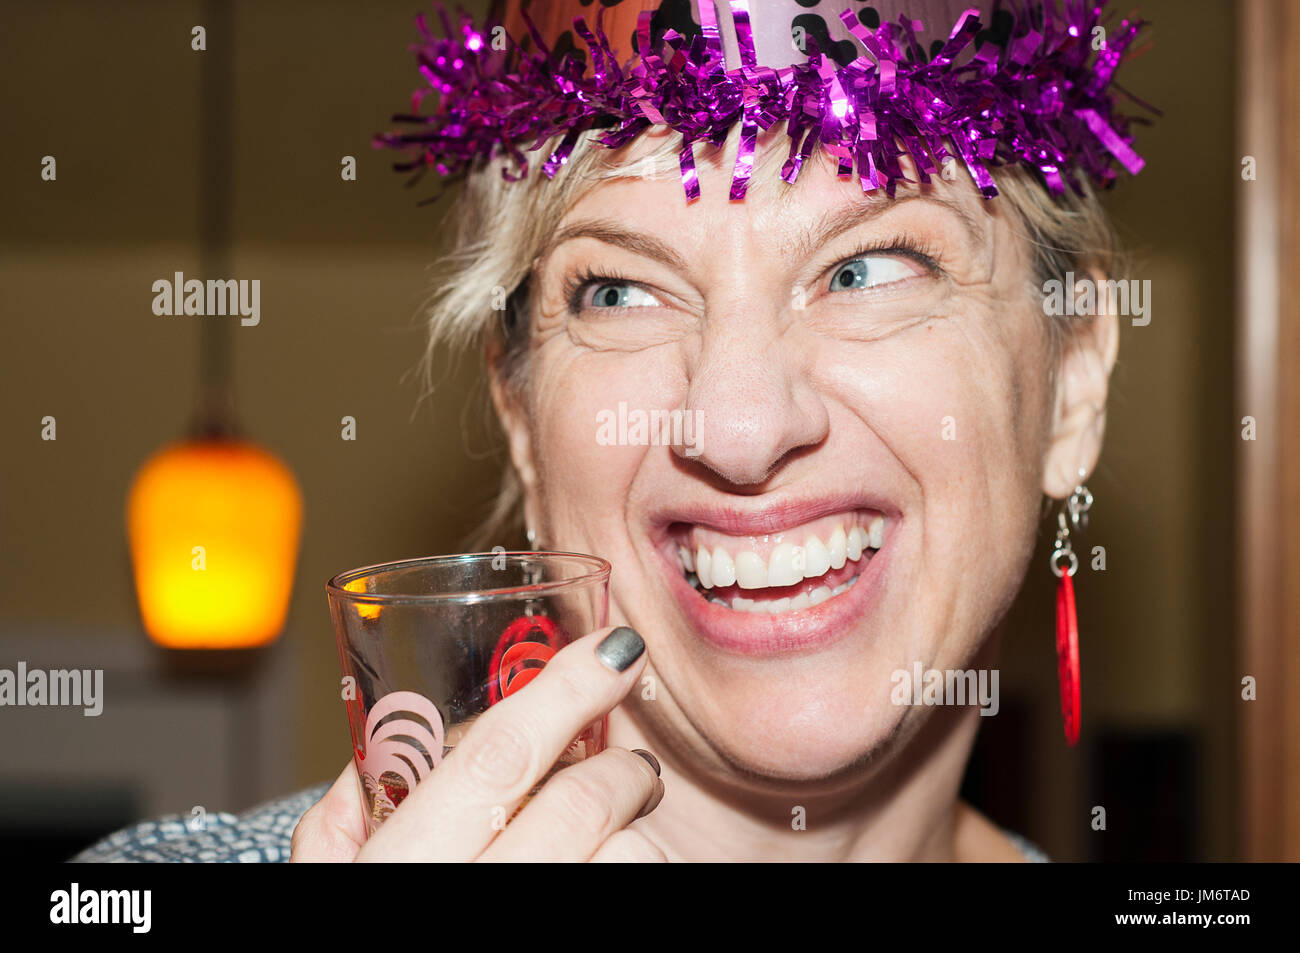 A woman wearing a party hat at a birthday celebration. - Stock Image